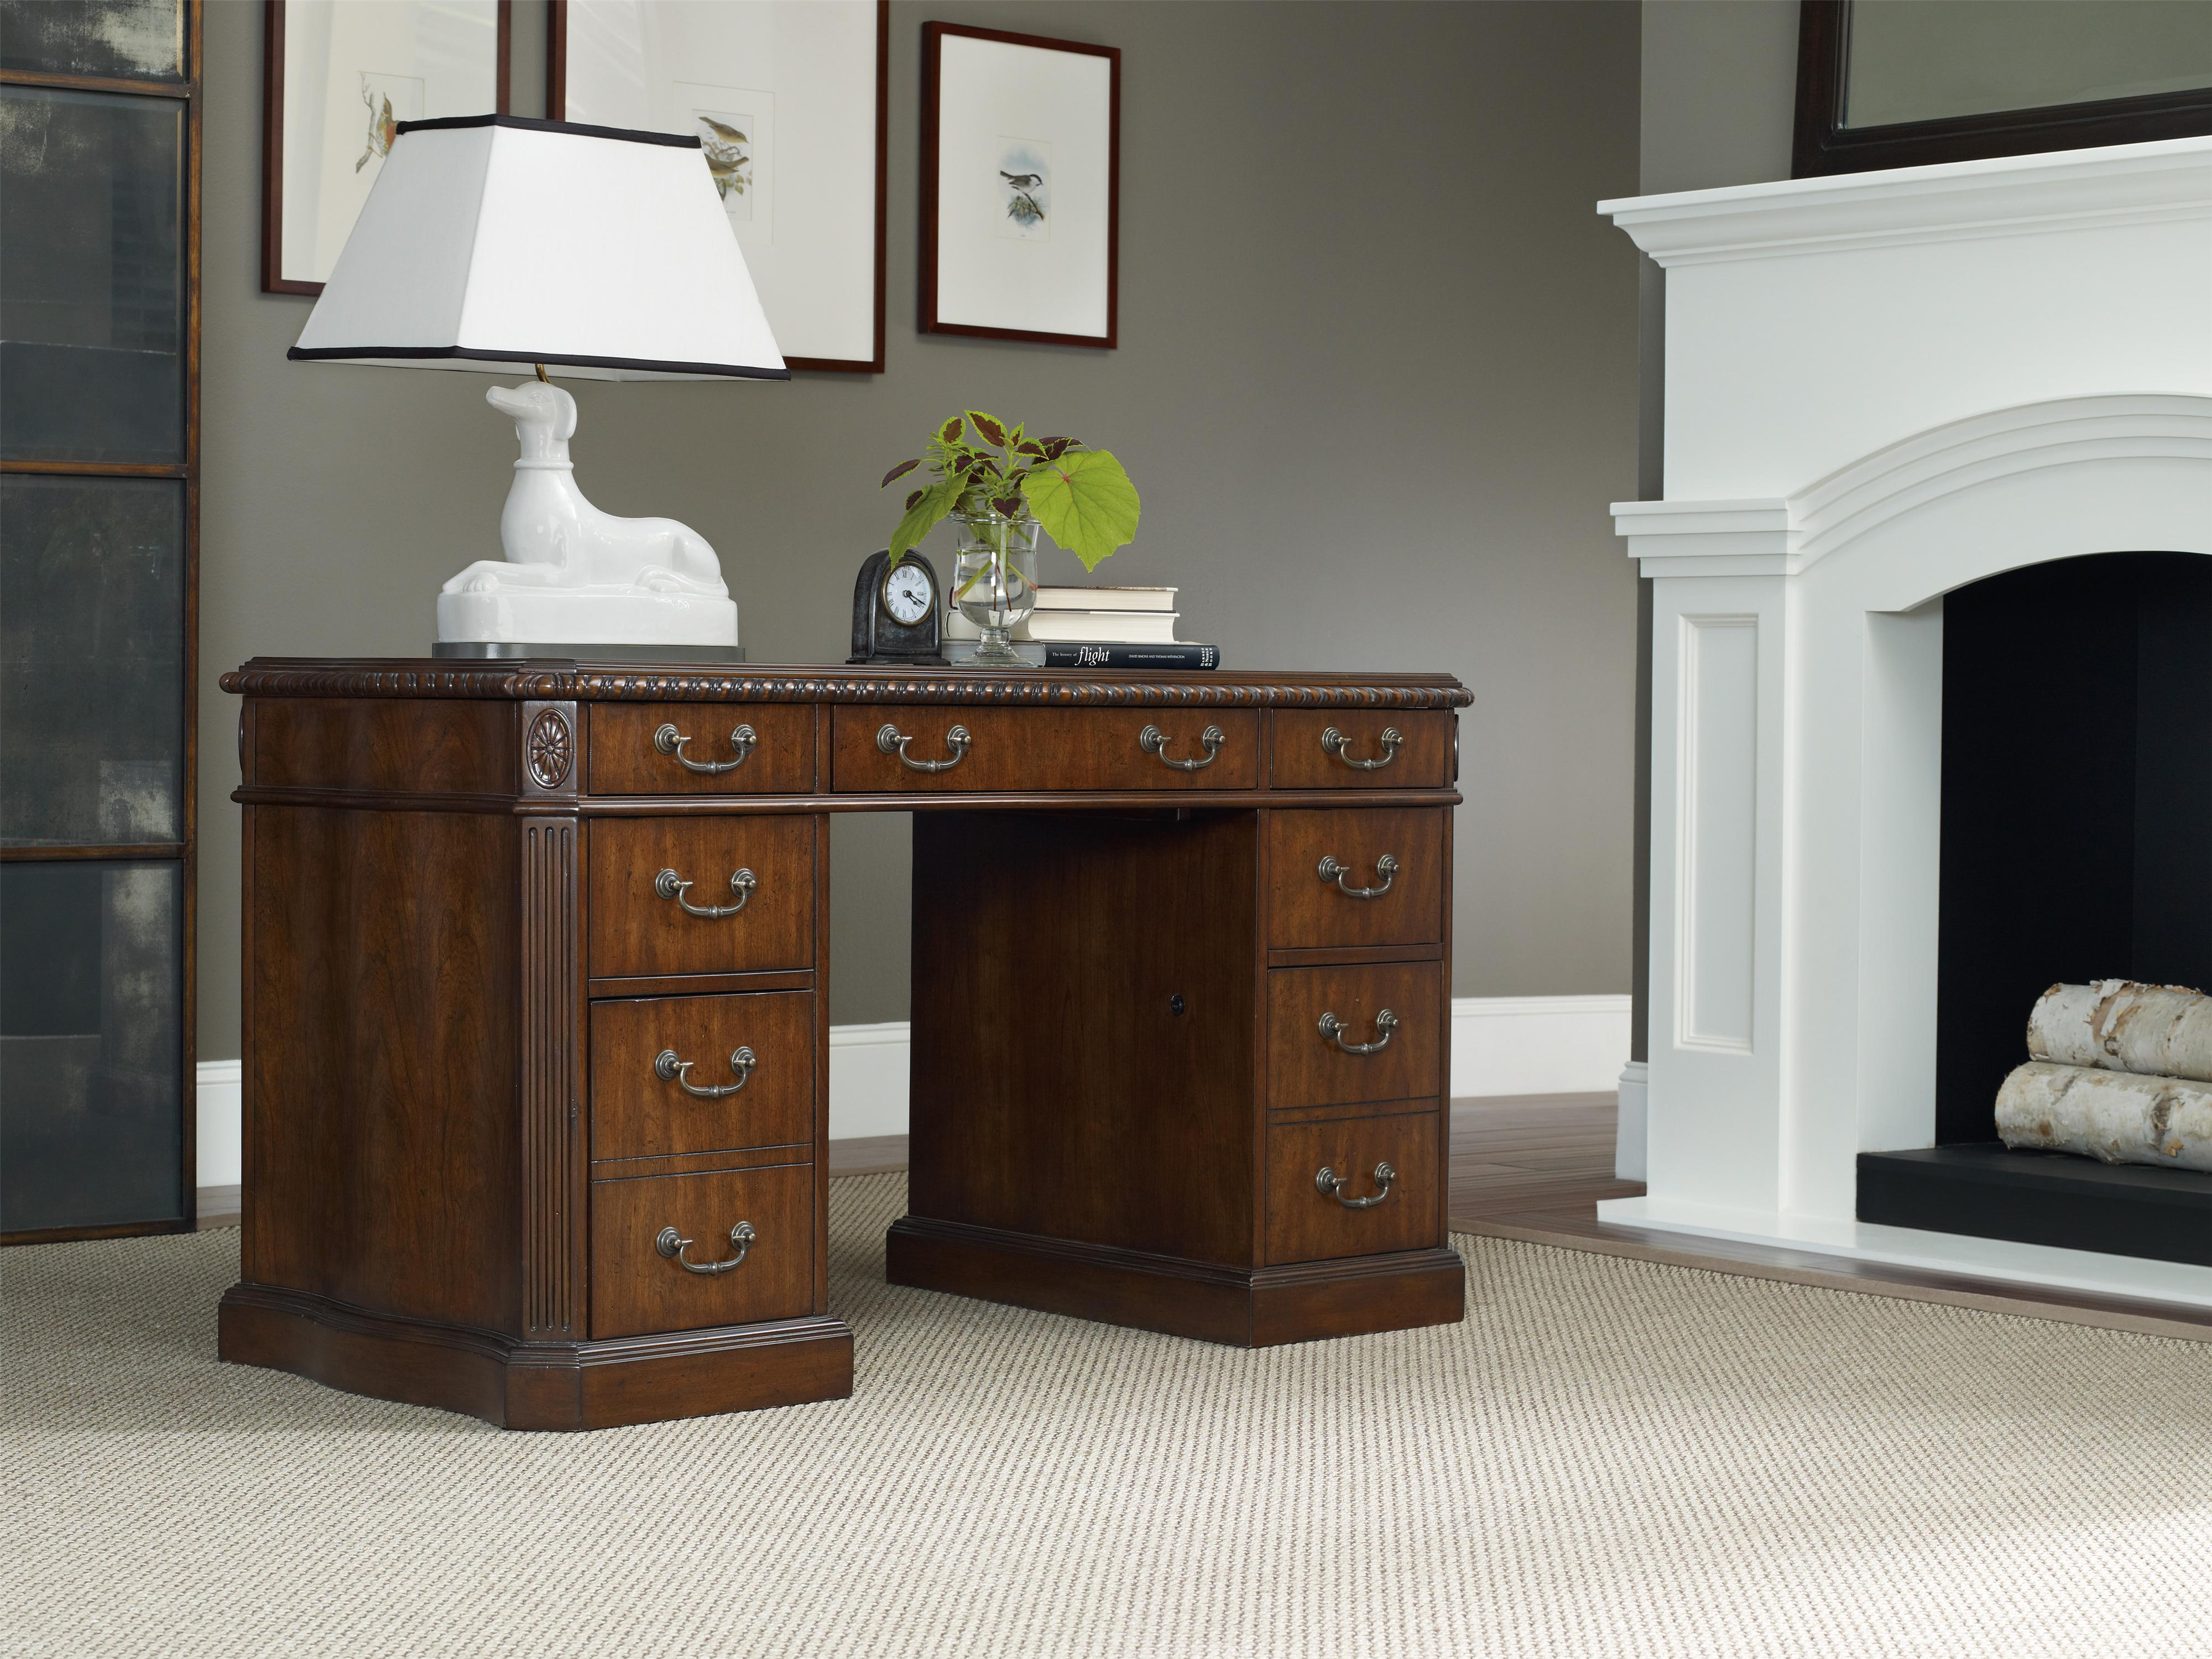 Hooker furniture home office rope moulded double pedestal - Home office furniture components ...